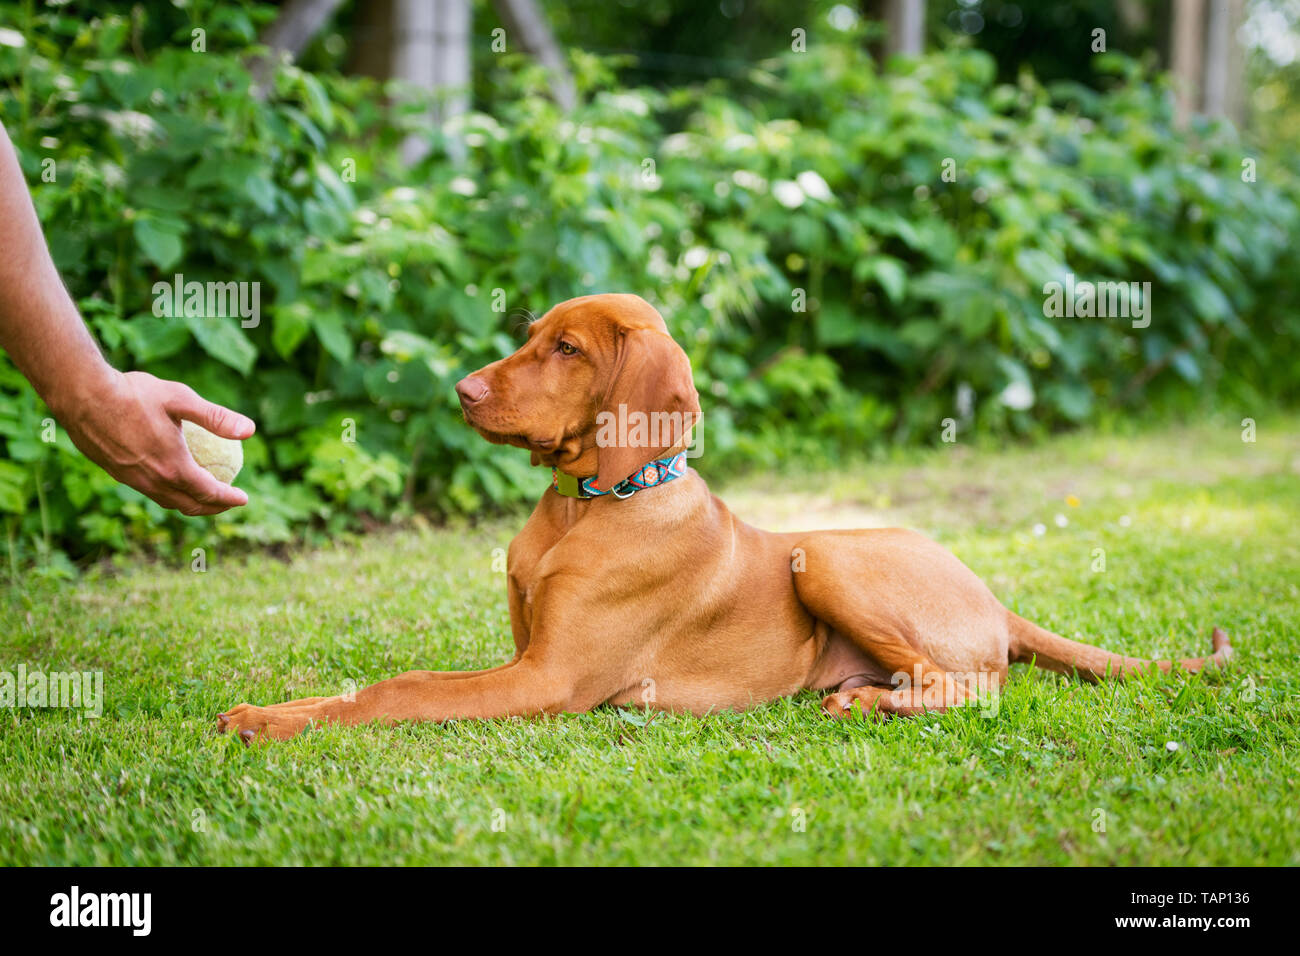 Obedience training. Man training his vizsla puppy the Lie Down Command using ball as positive reinforcement. - Stock Image